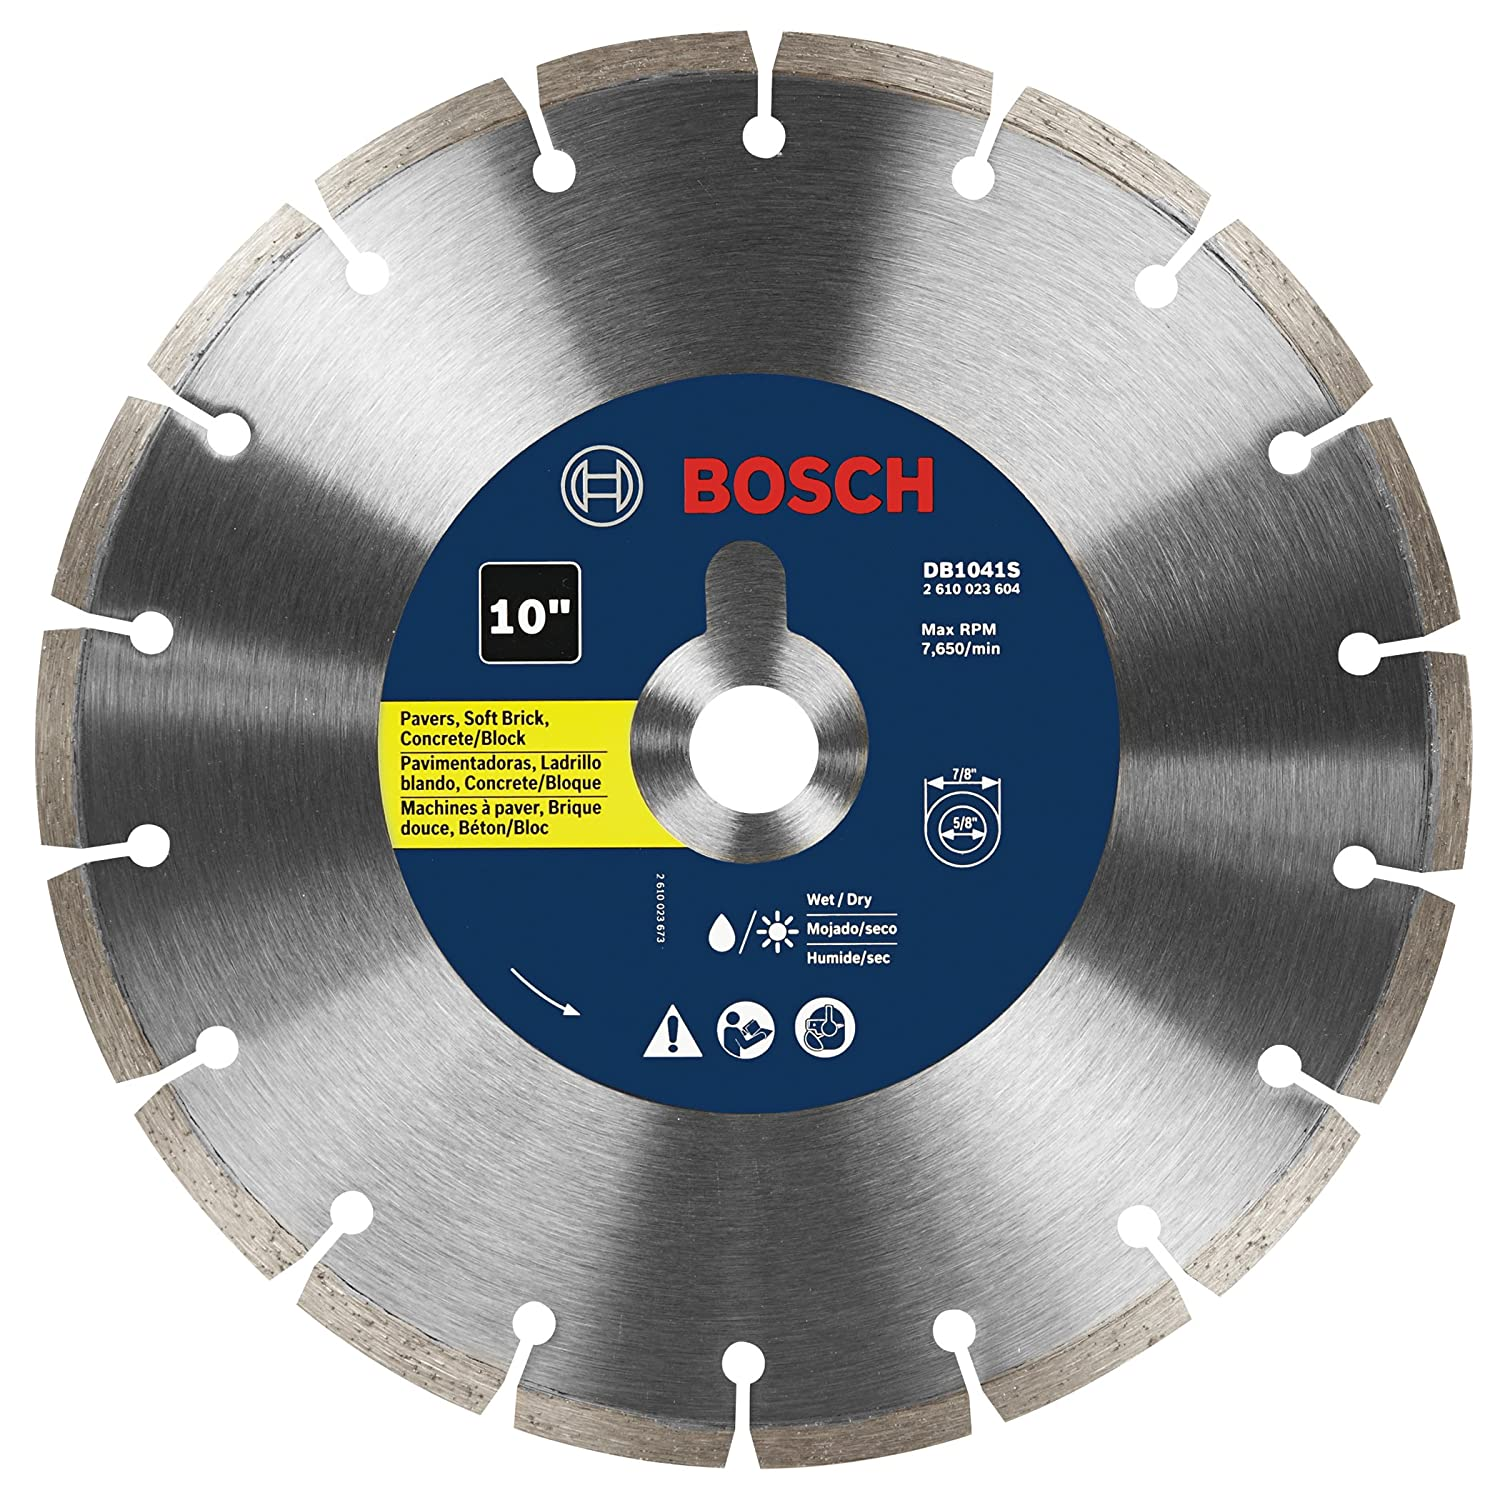 Bosch db1041s 10 inch segmented rim diamond blade amazon greentooth